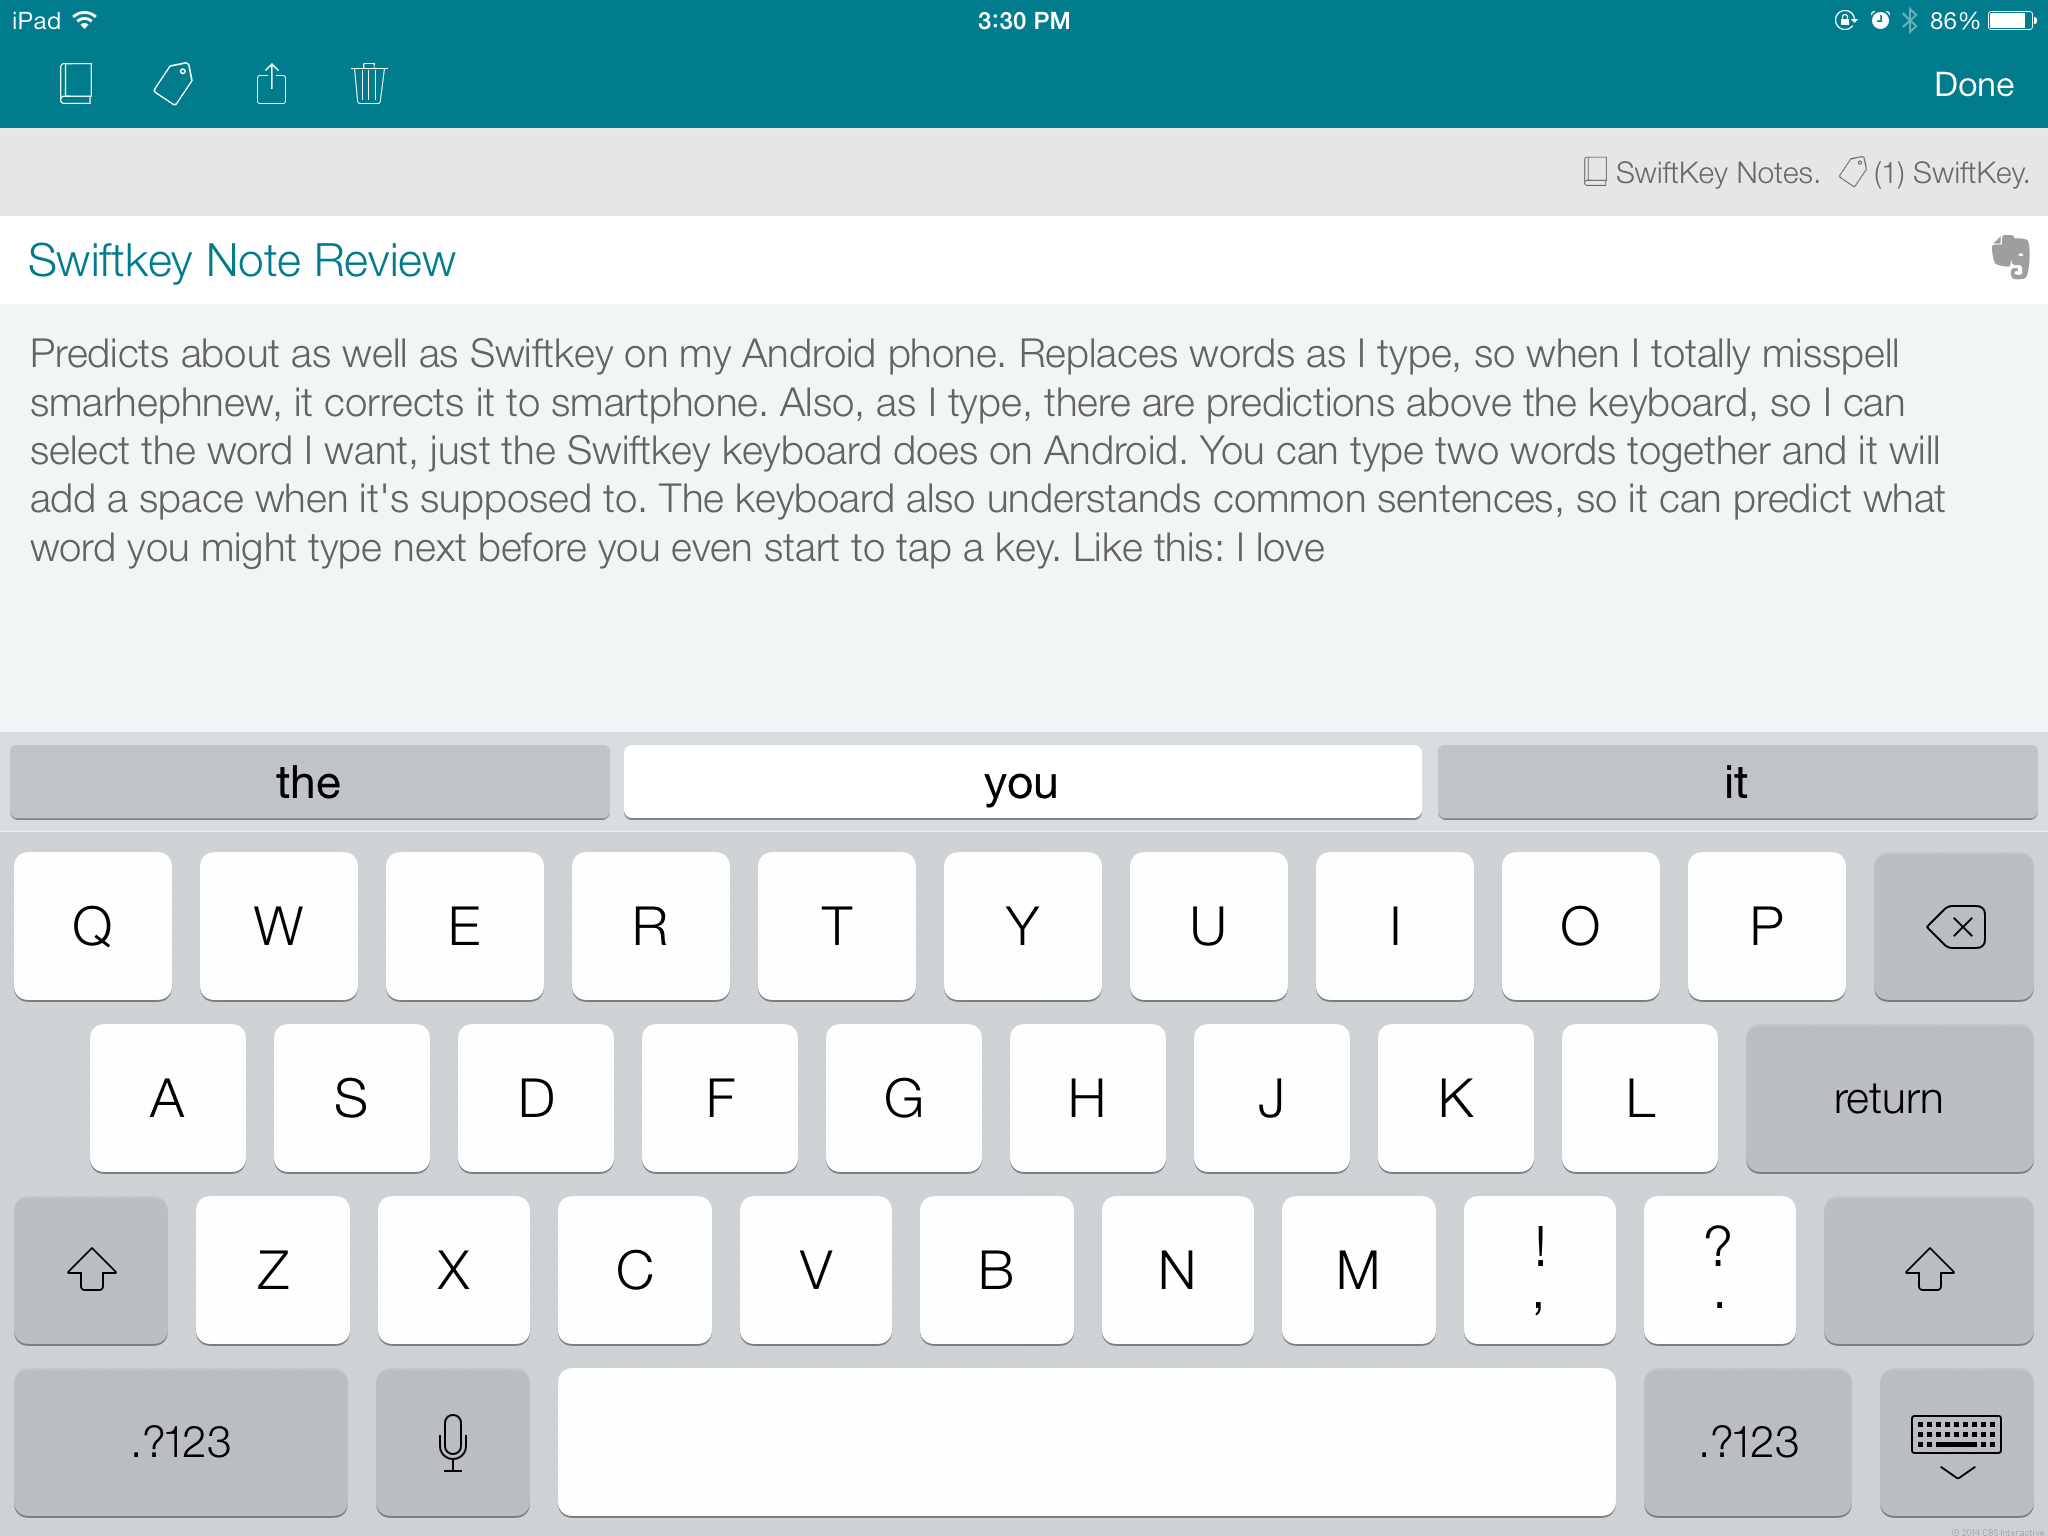 Swiftkey understands what you're typing and gives you predicitons along the way.